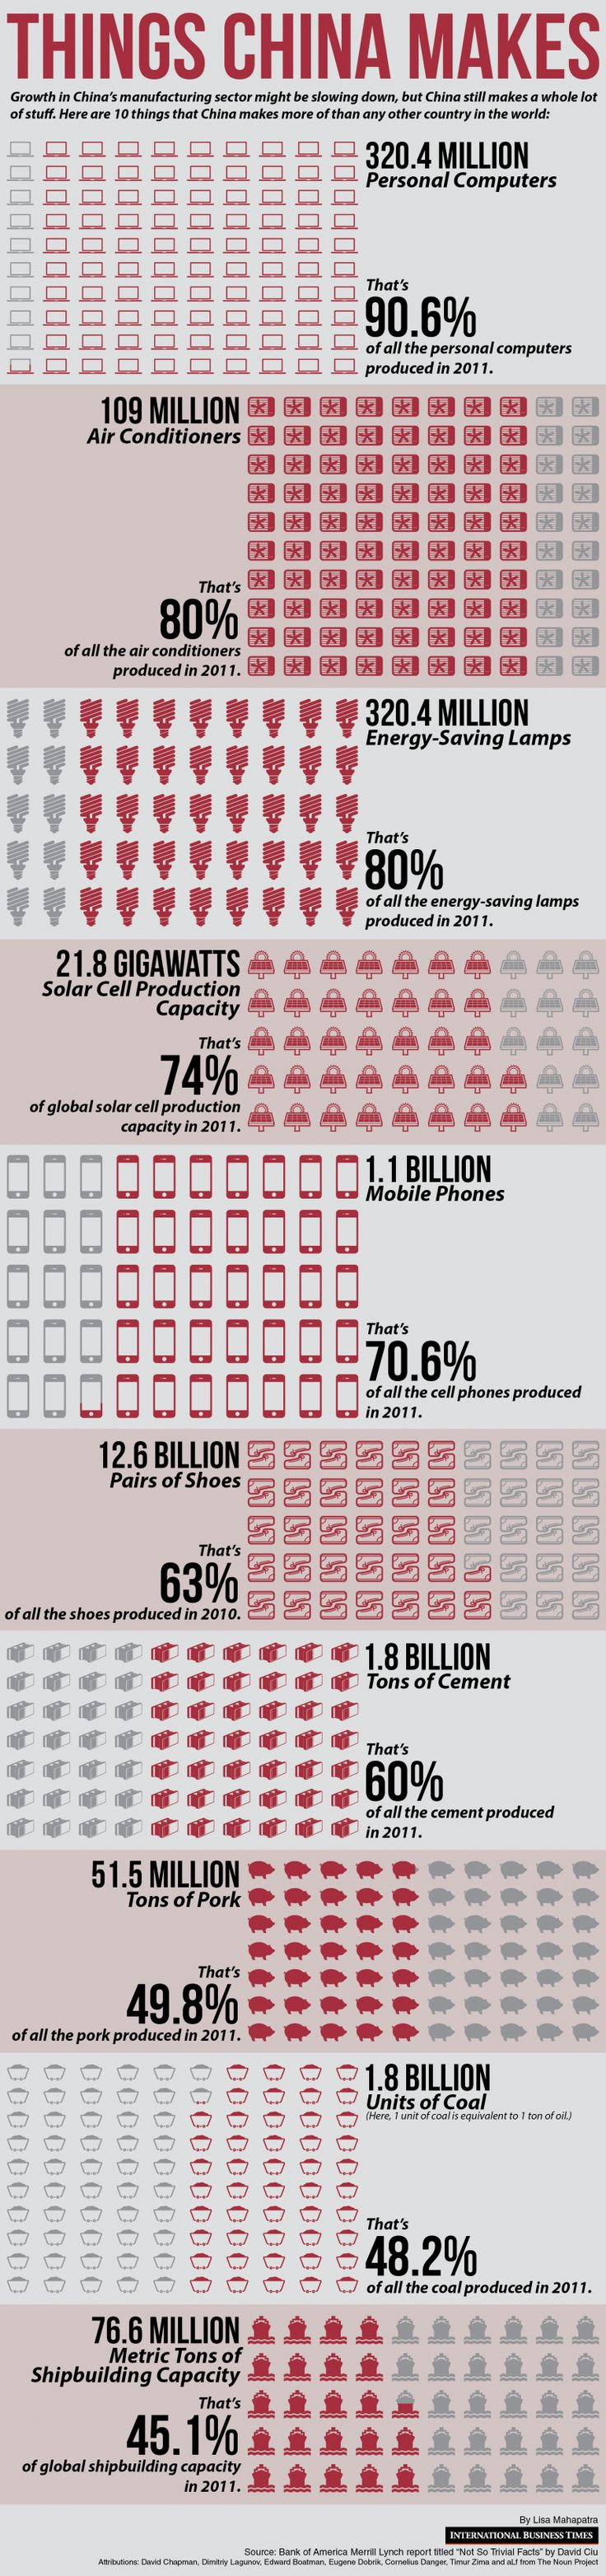 China Manufacturing: 10 Things The Chinese Make More Of Than Anyone Else In The World [Infographic]